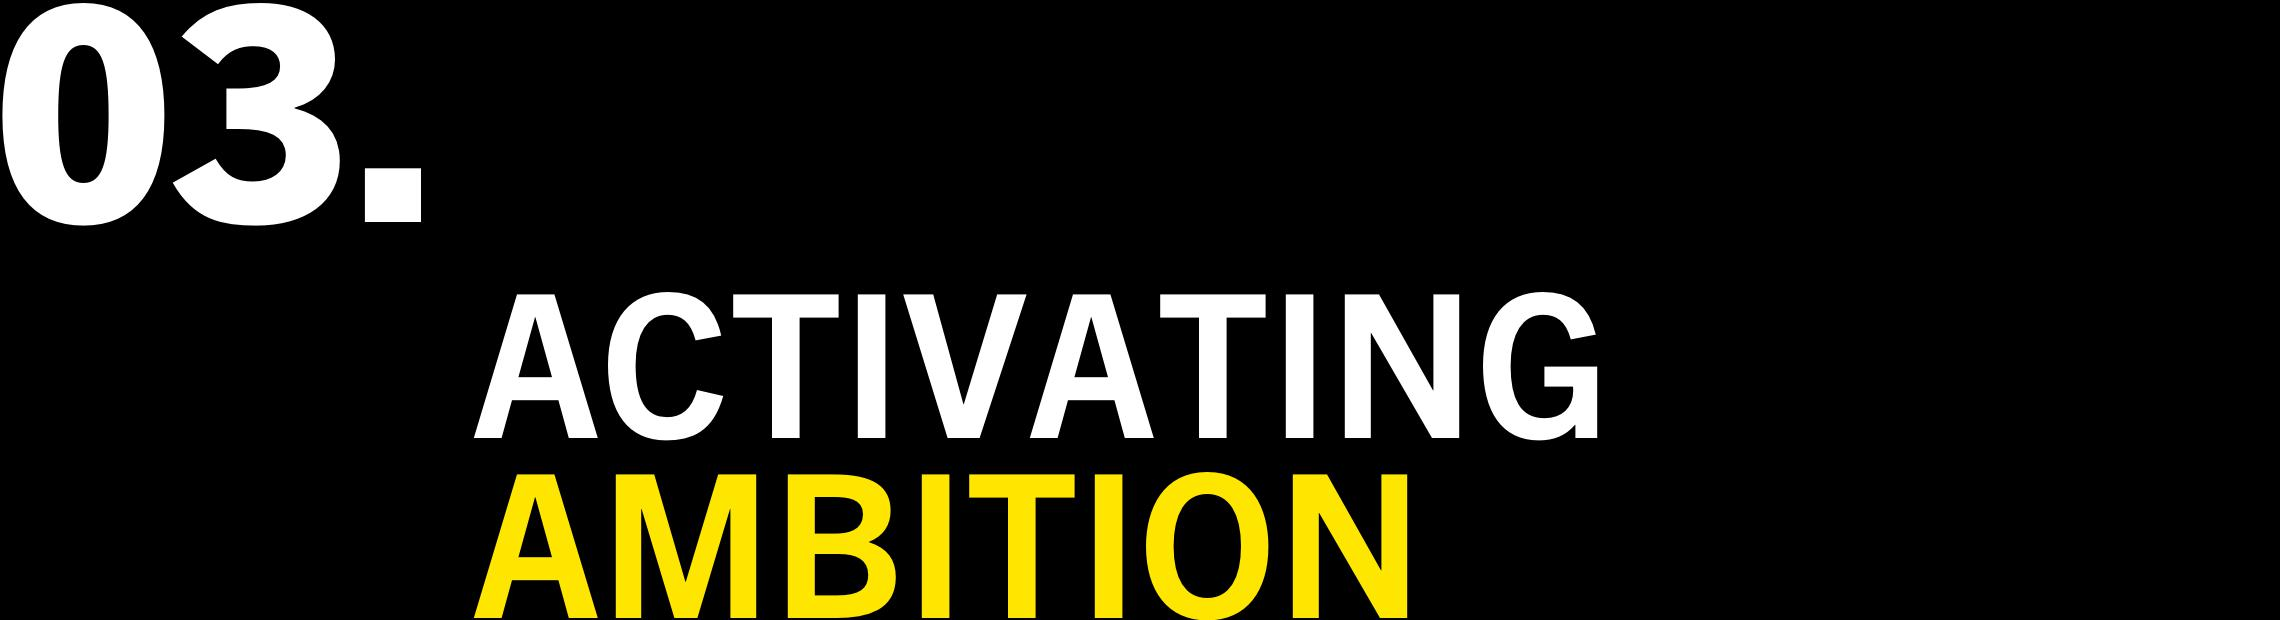 3. ACTIVATING AMBITION